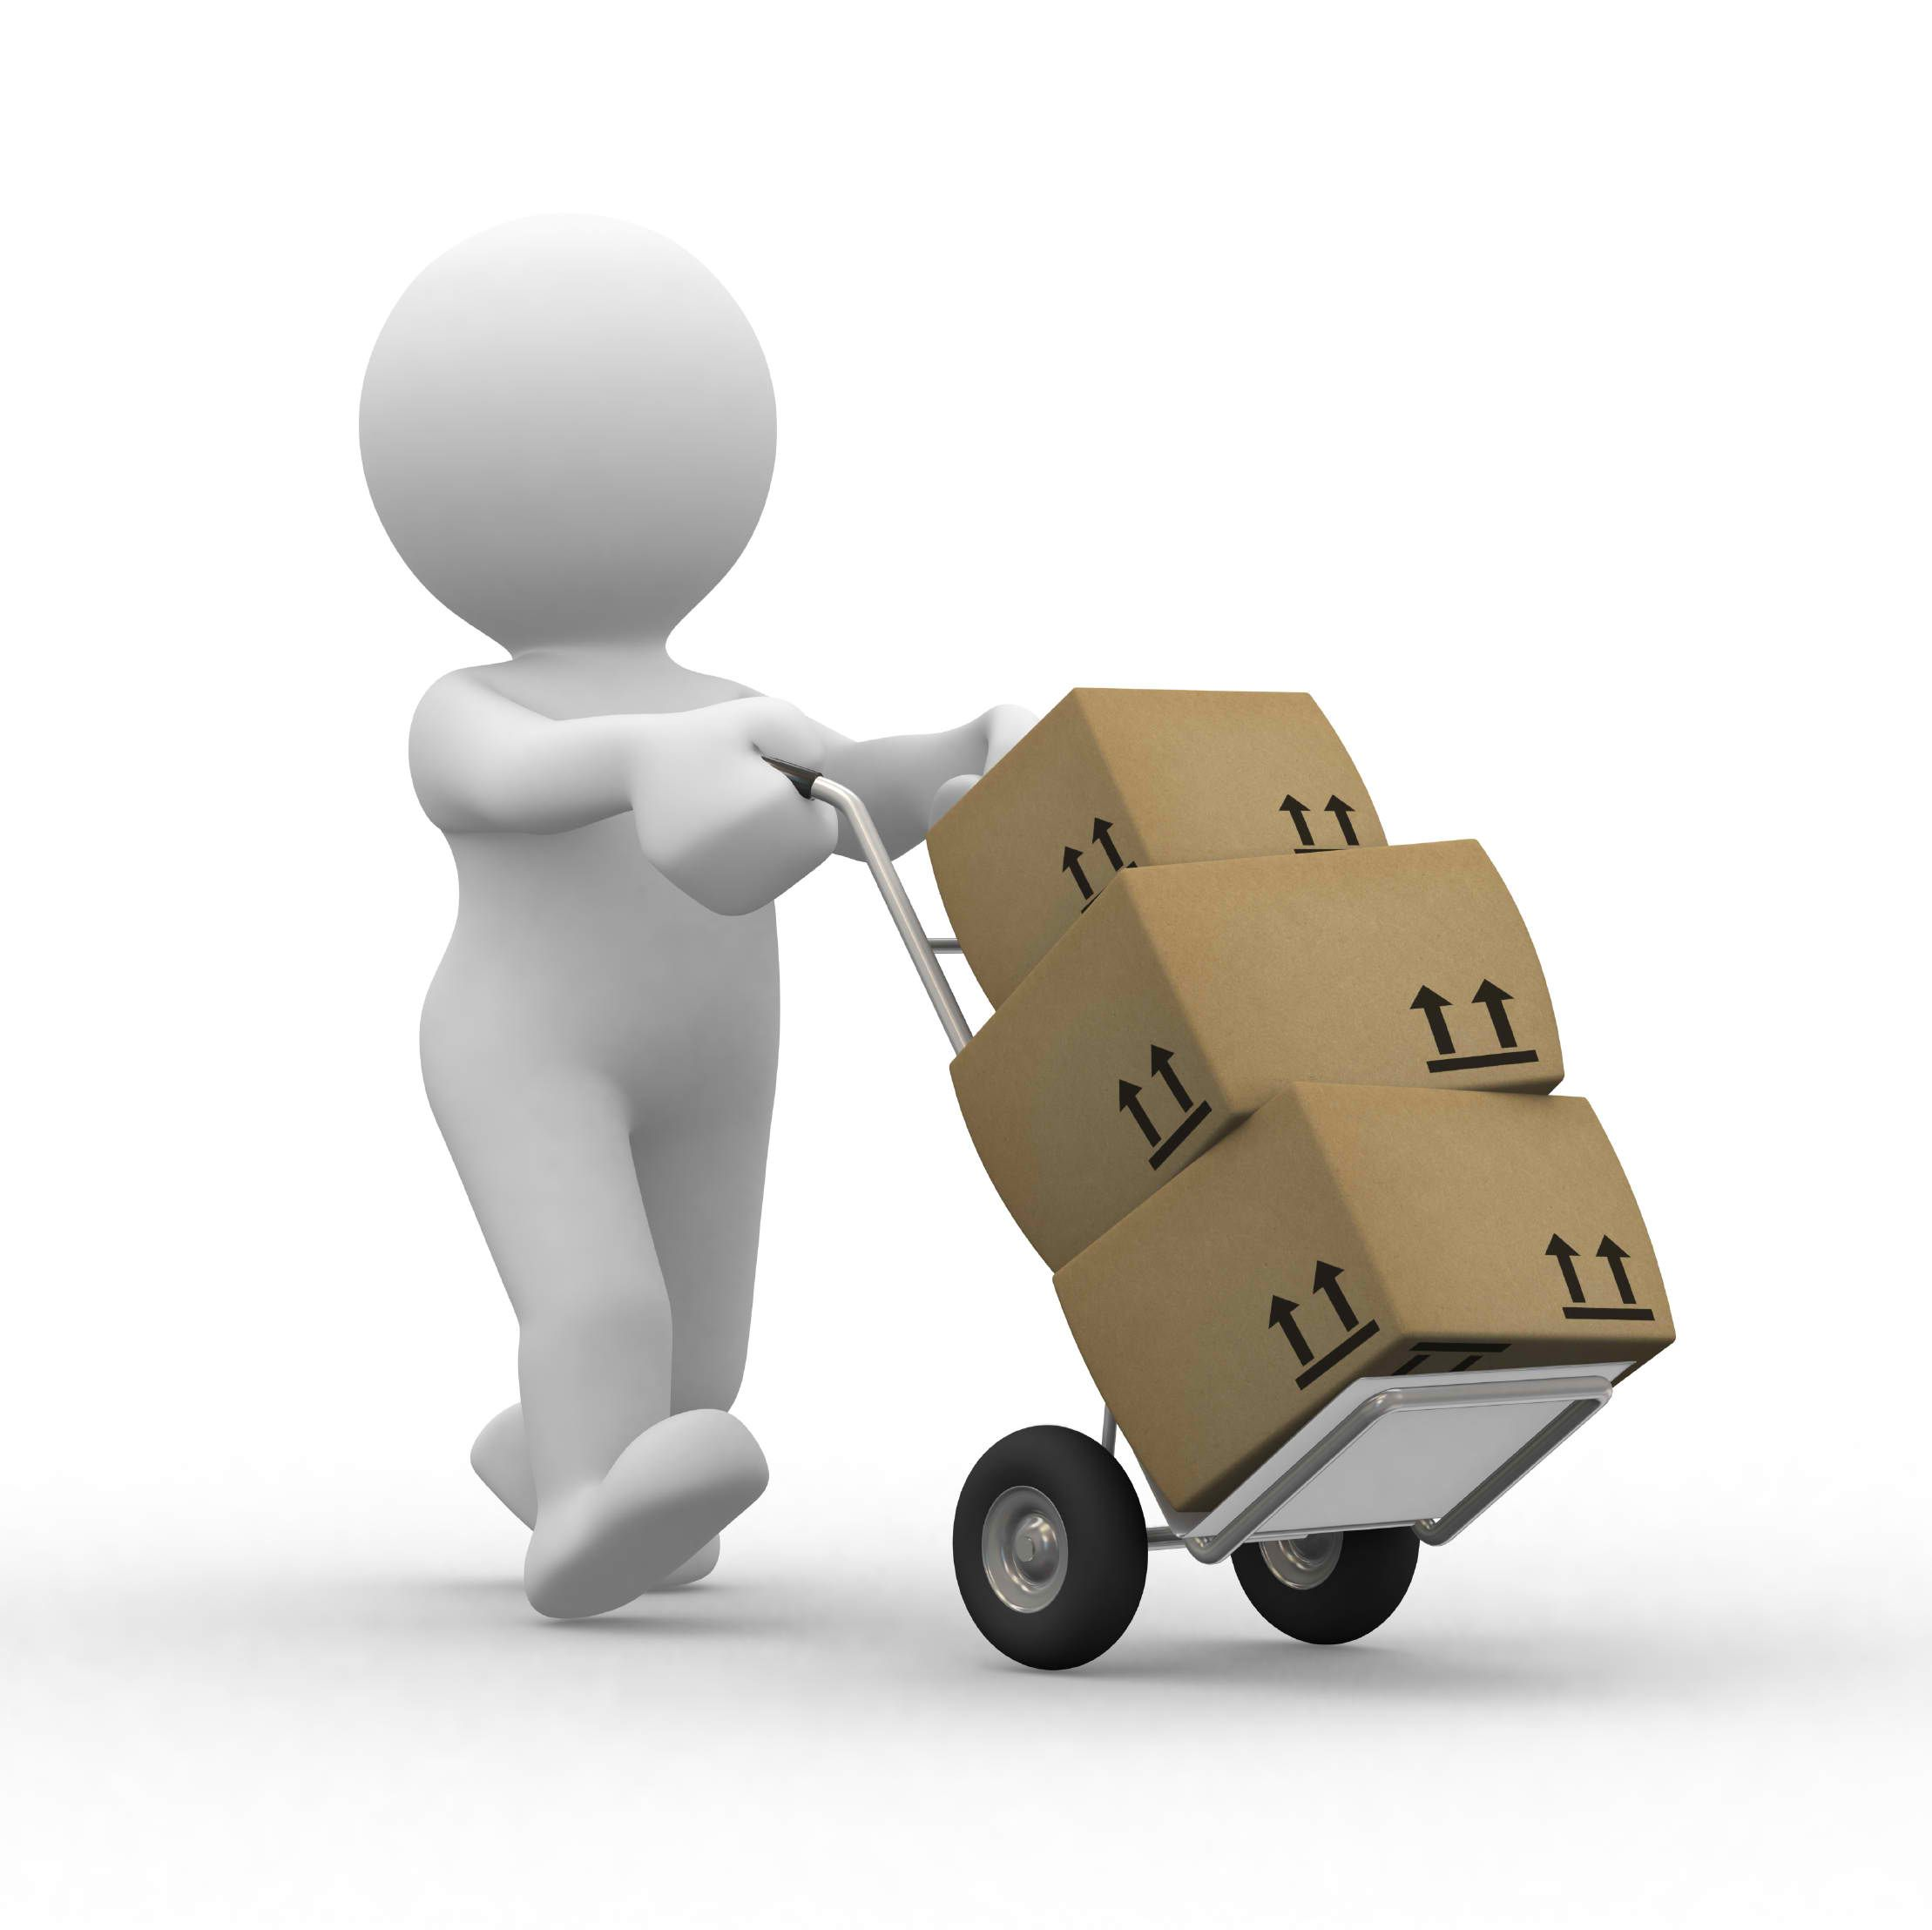 Parcel clipart interface Download Parcel delivery Delivery parcel